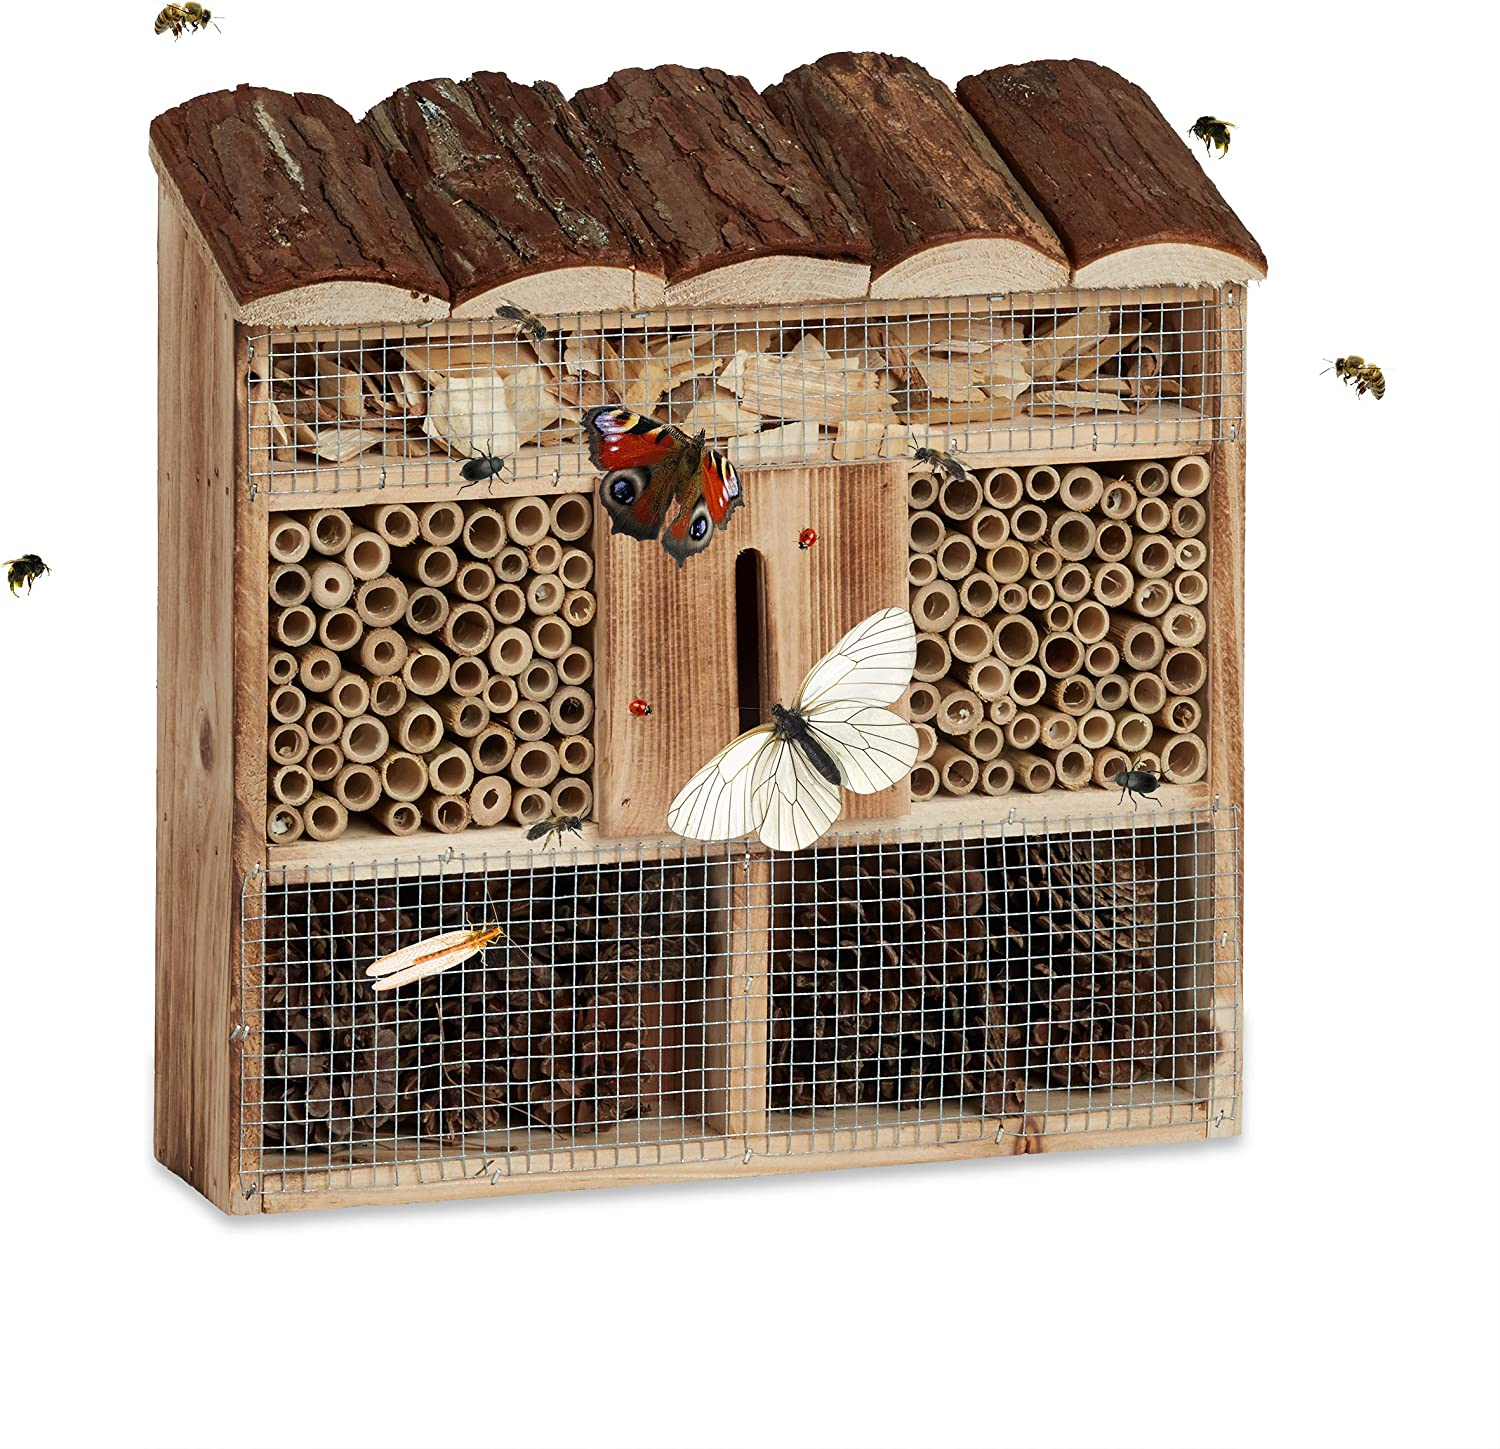 Relaxdays Hanging Insect Hotel, Bee Home, Butterfly House, Flamed Wood, HxWxD: 31 x 30.5 x 9.5 cm, Natural Brown